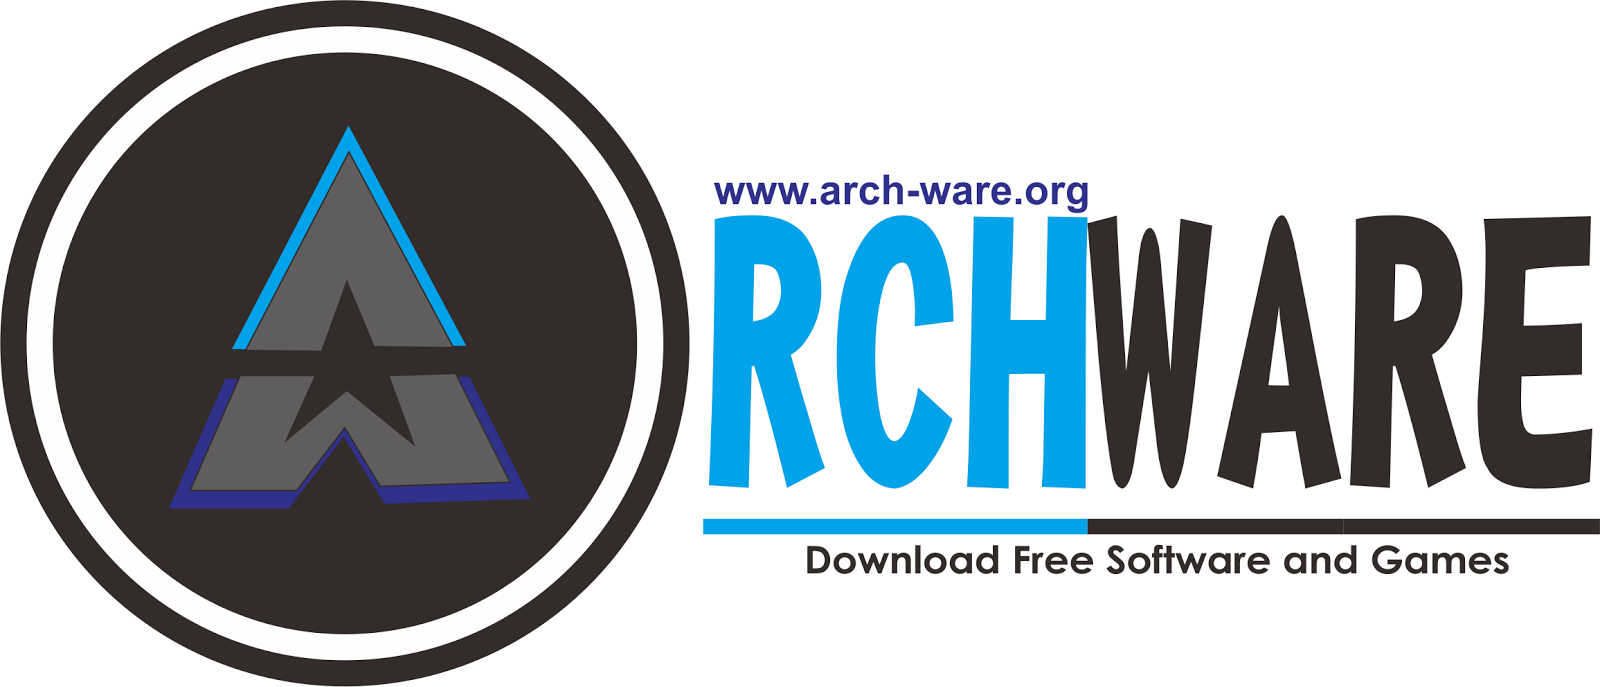 ArchWare - Download Free Software and Games